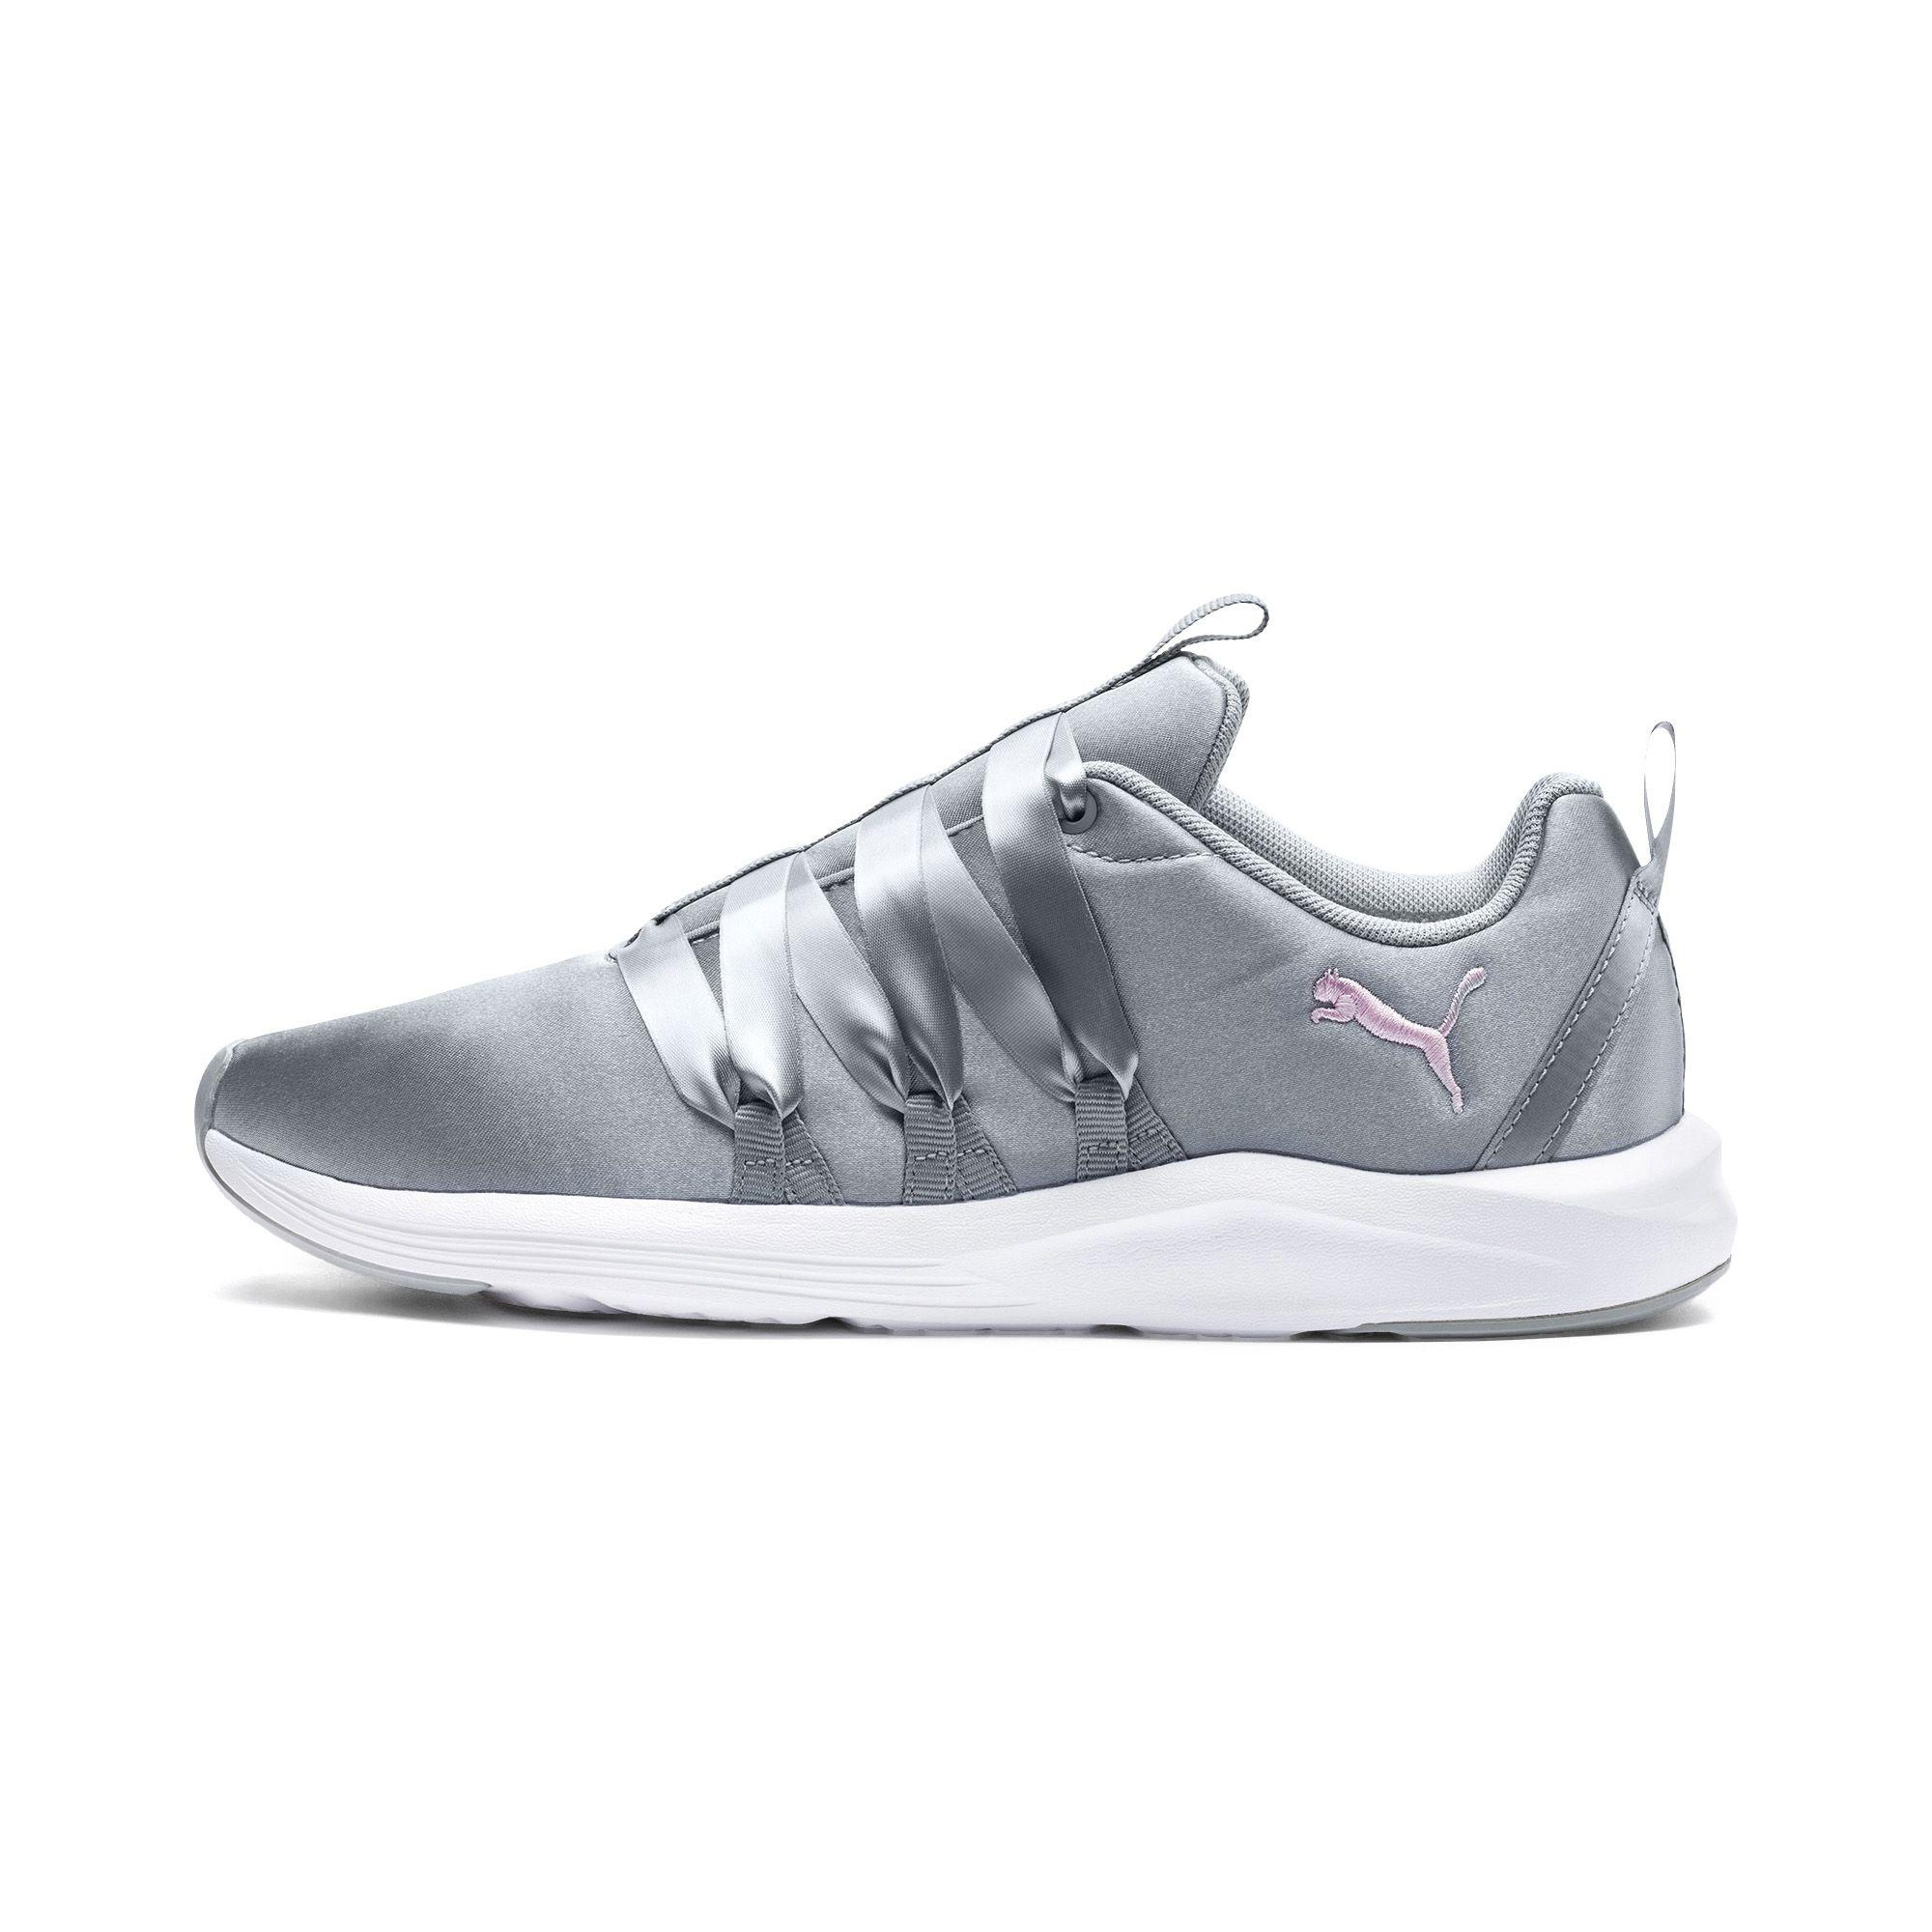 5c0a6a8898d3 Lyst - PUMA Prowl Alt Satin Women s Training Shoes in White - Save 41%